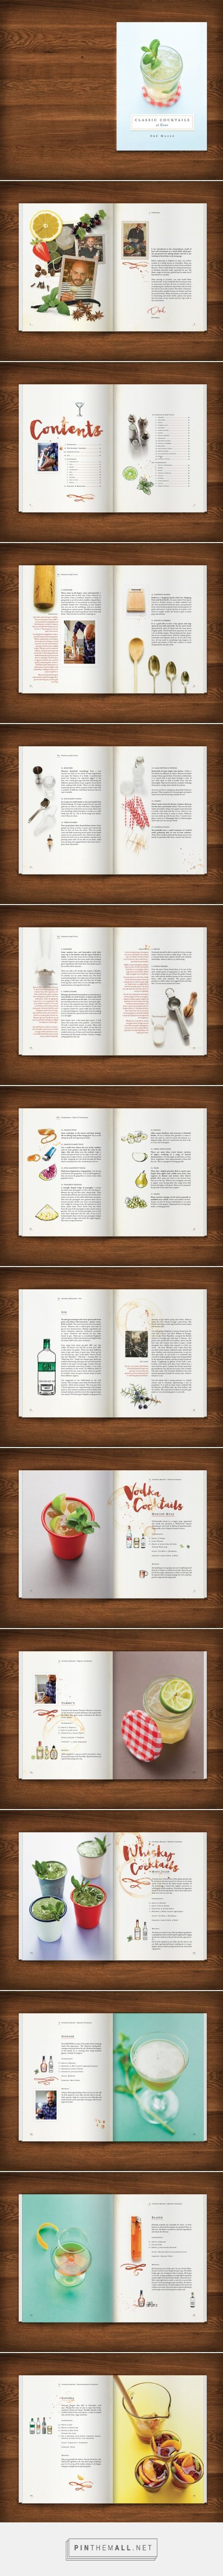 Designed by www.artistictype.co.uk - Cocktail Recipe Book design for Dre Masso. The brief was to design a recipe book for the home bartender that looked fun, relaxed and well used.  All of the ingredi (Ingredients Design Products)